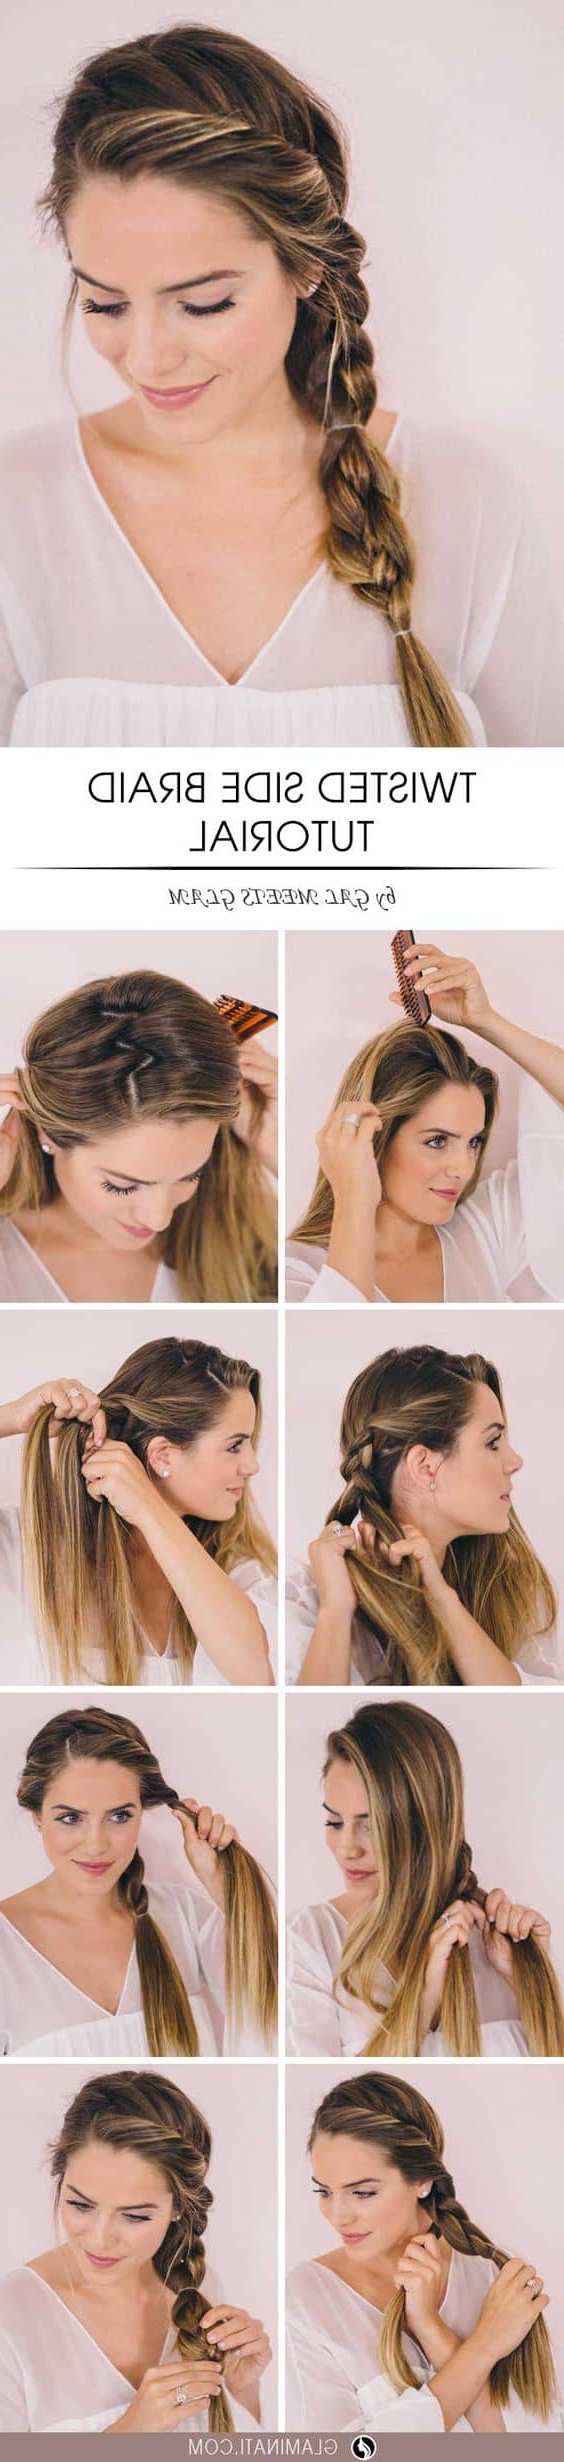 25 Effortless Side Braid Hairstyles To Make You Feel Special Throughout Best And Newest Wide Crown Braided Hairstyles With A Twist (View 13 of 20)